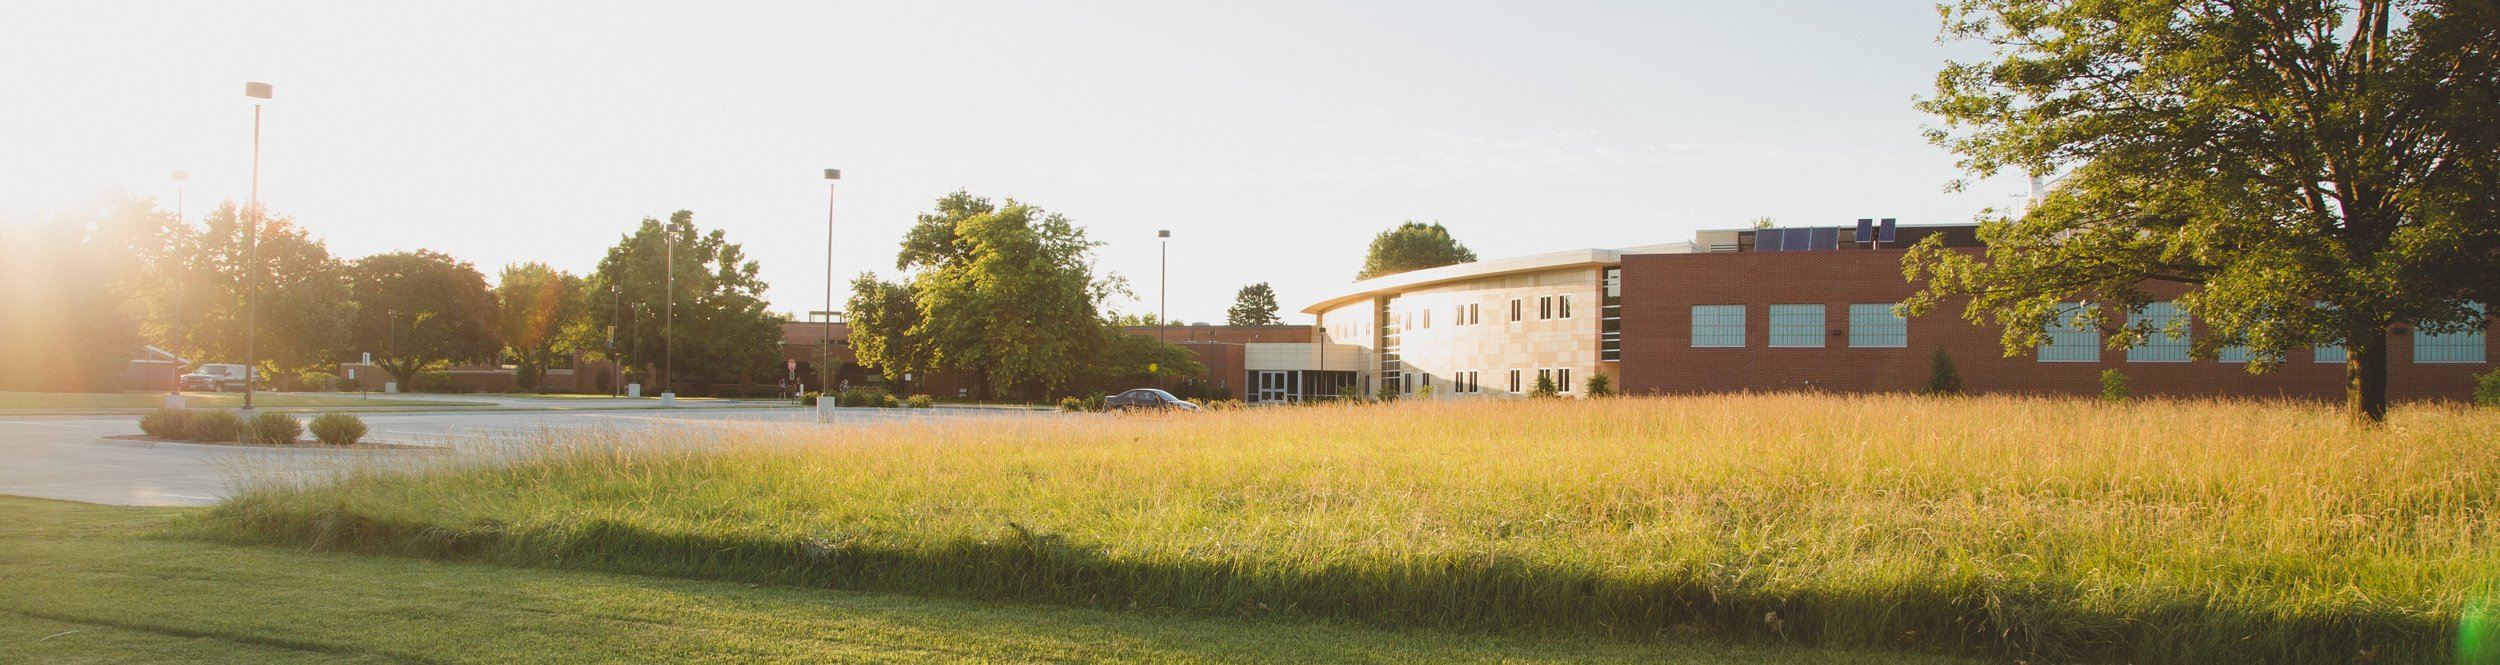 A large science building behind grass.